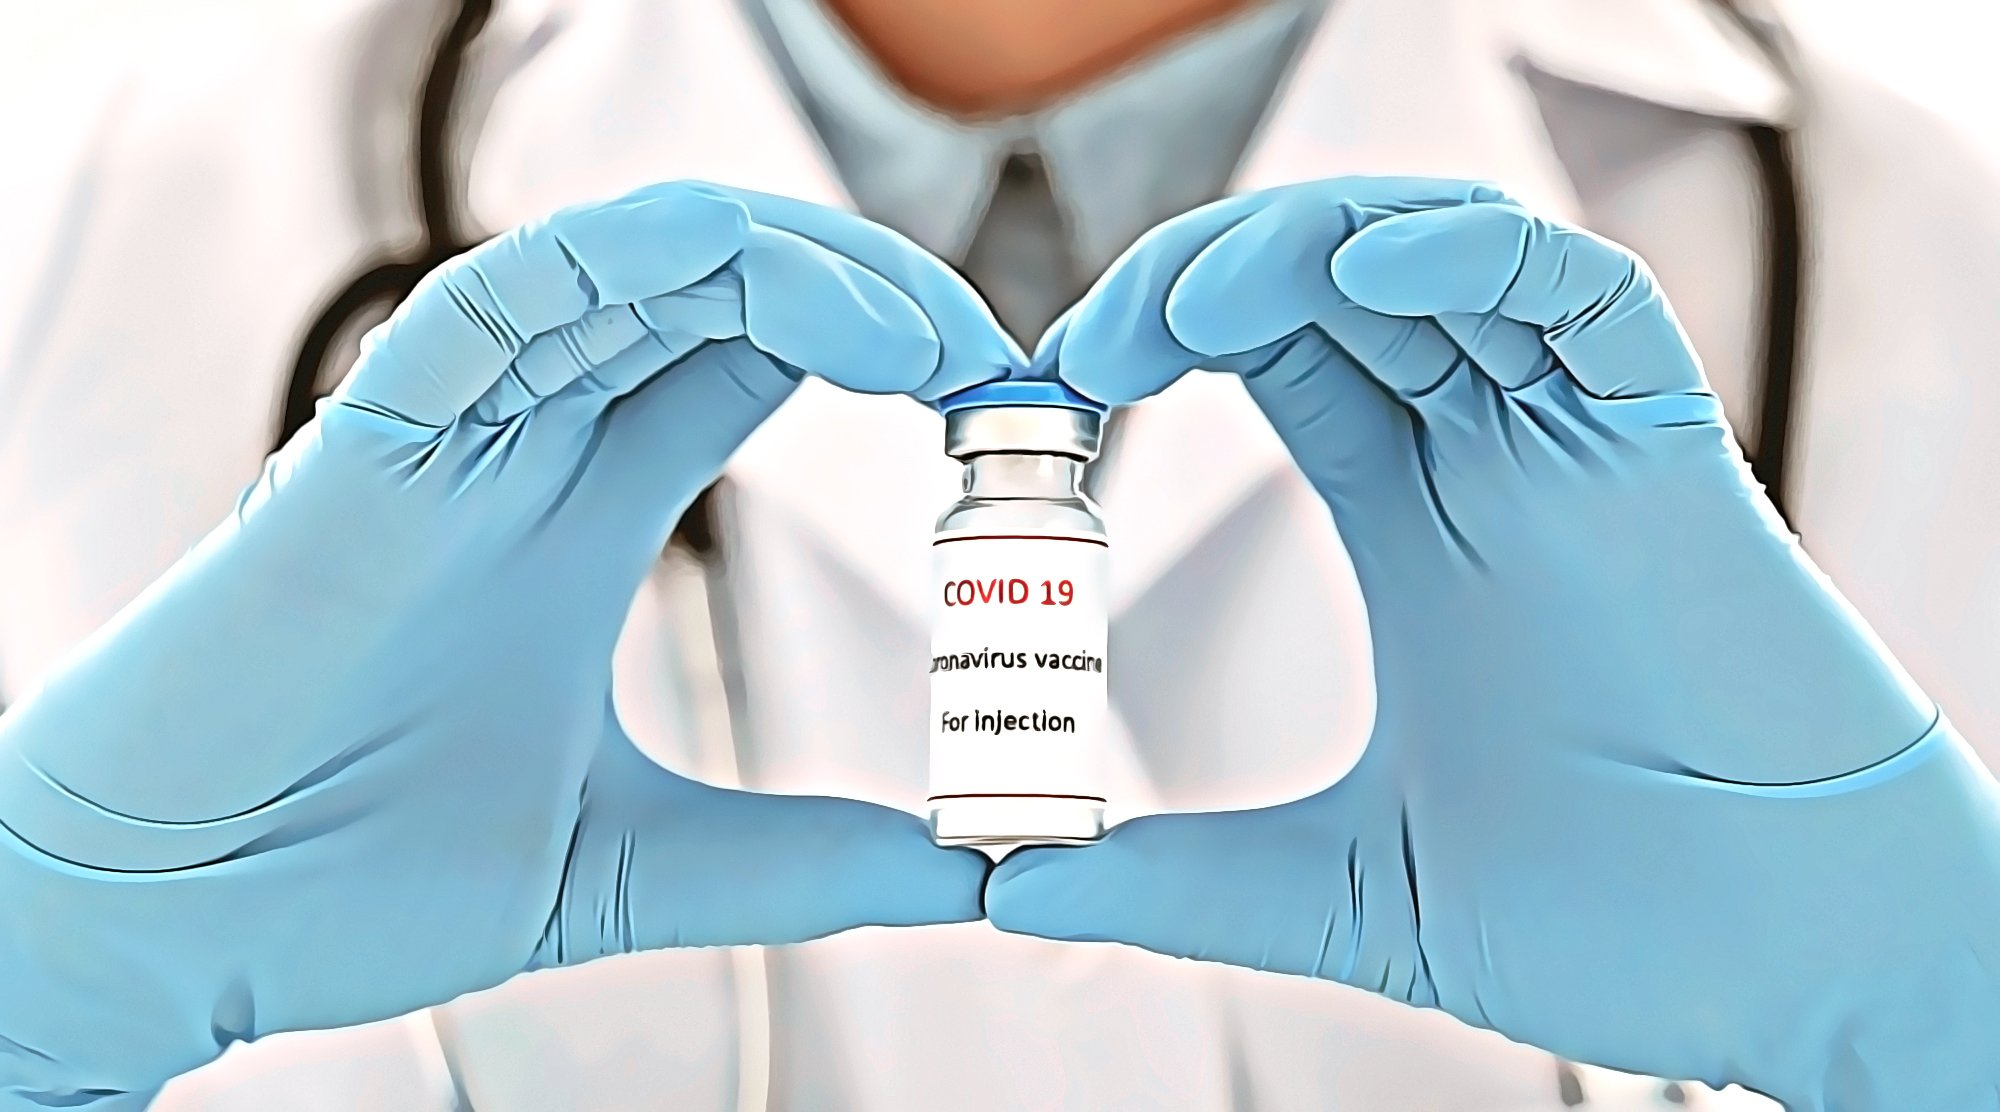 Double Check: Are Rising COVID-19 Cases Linked to Vaccine Efficacy?